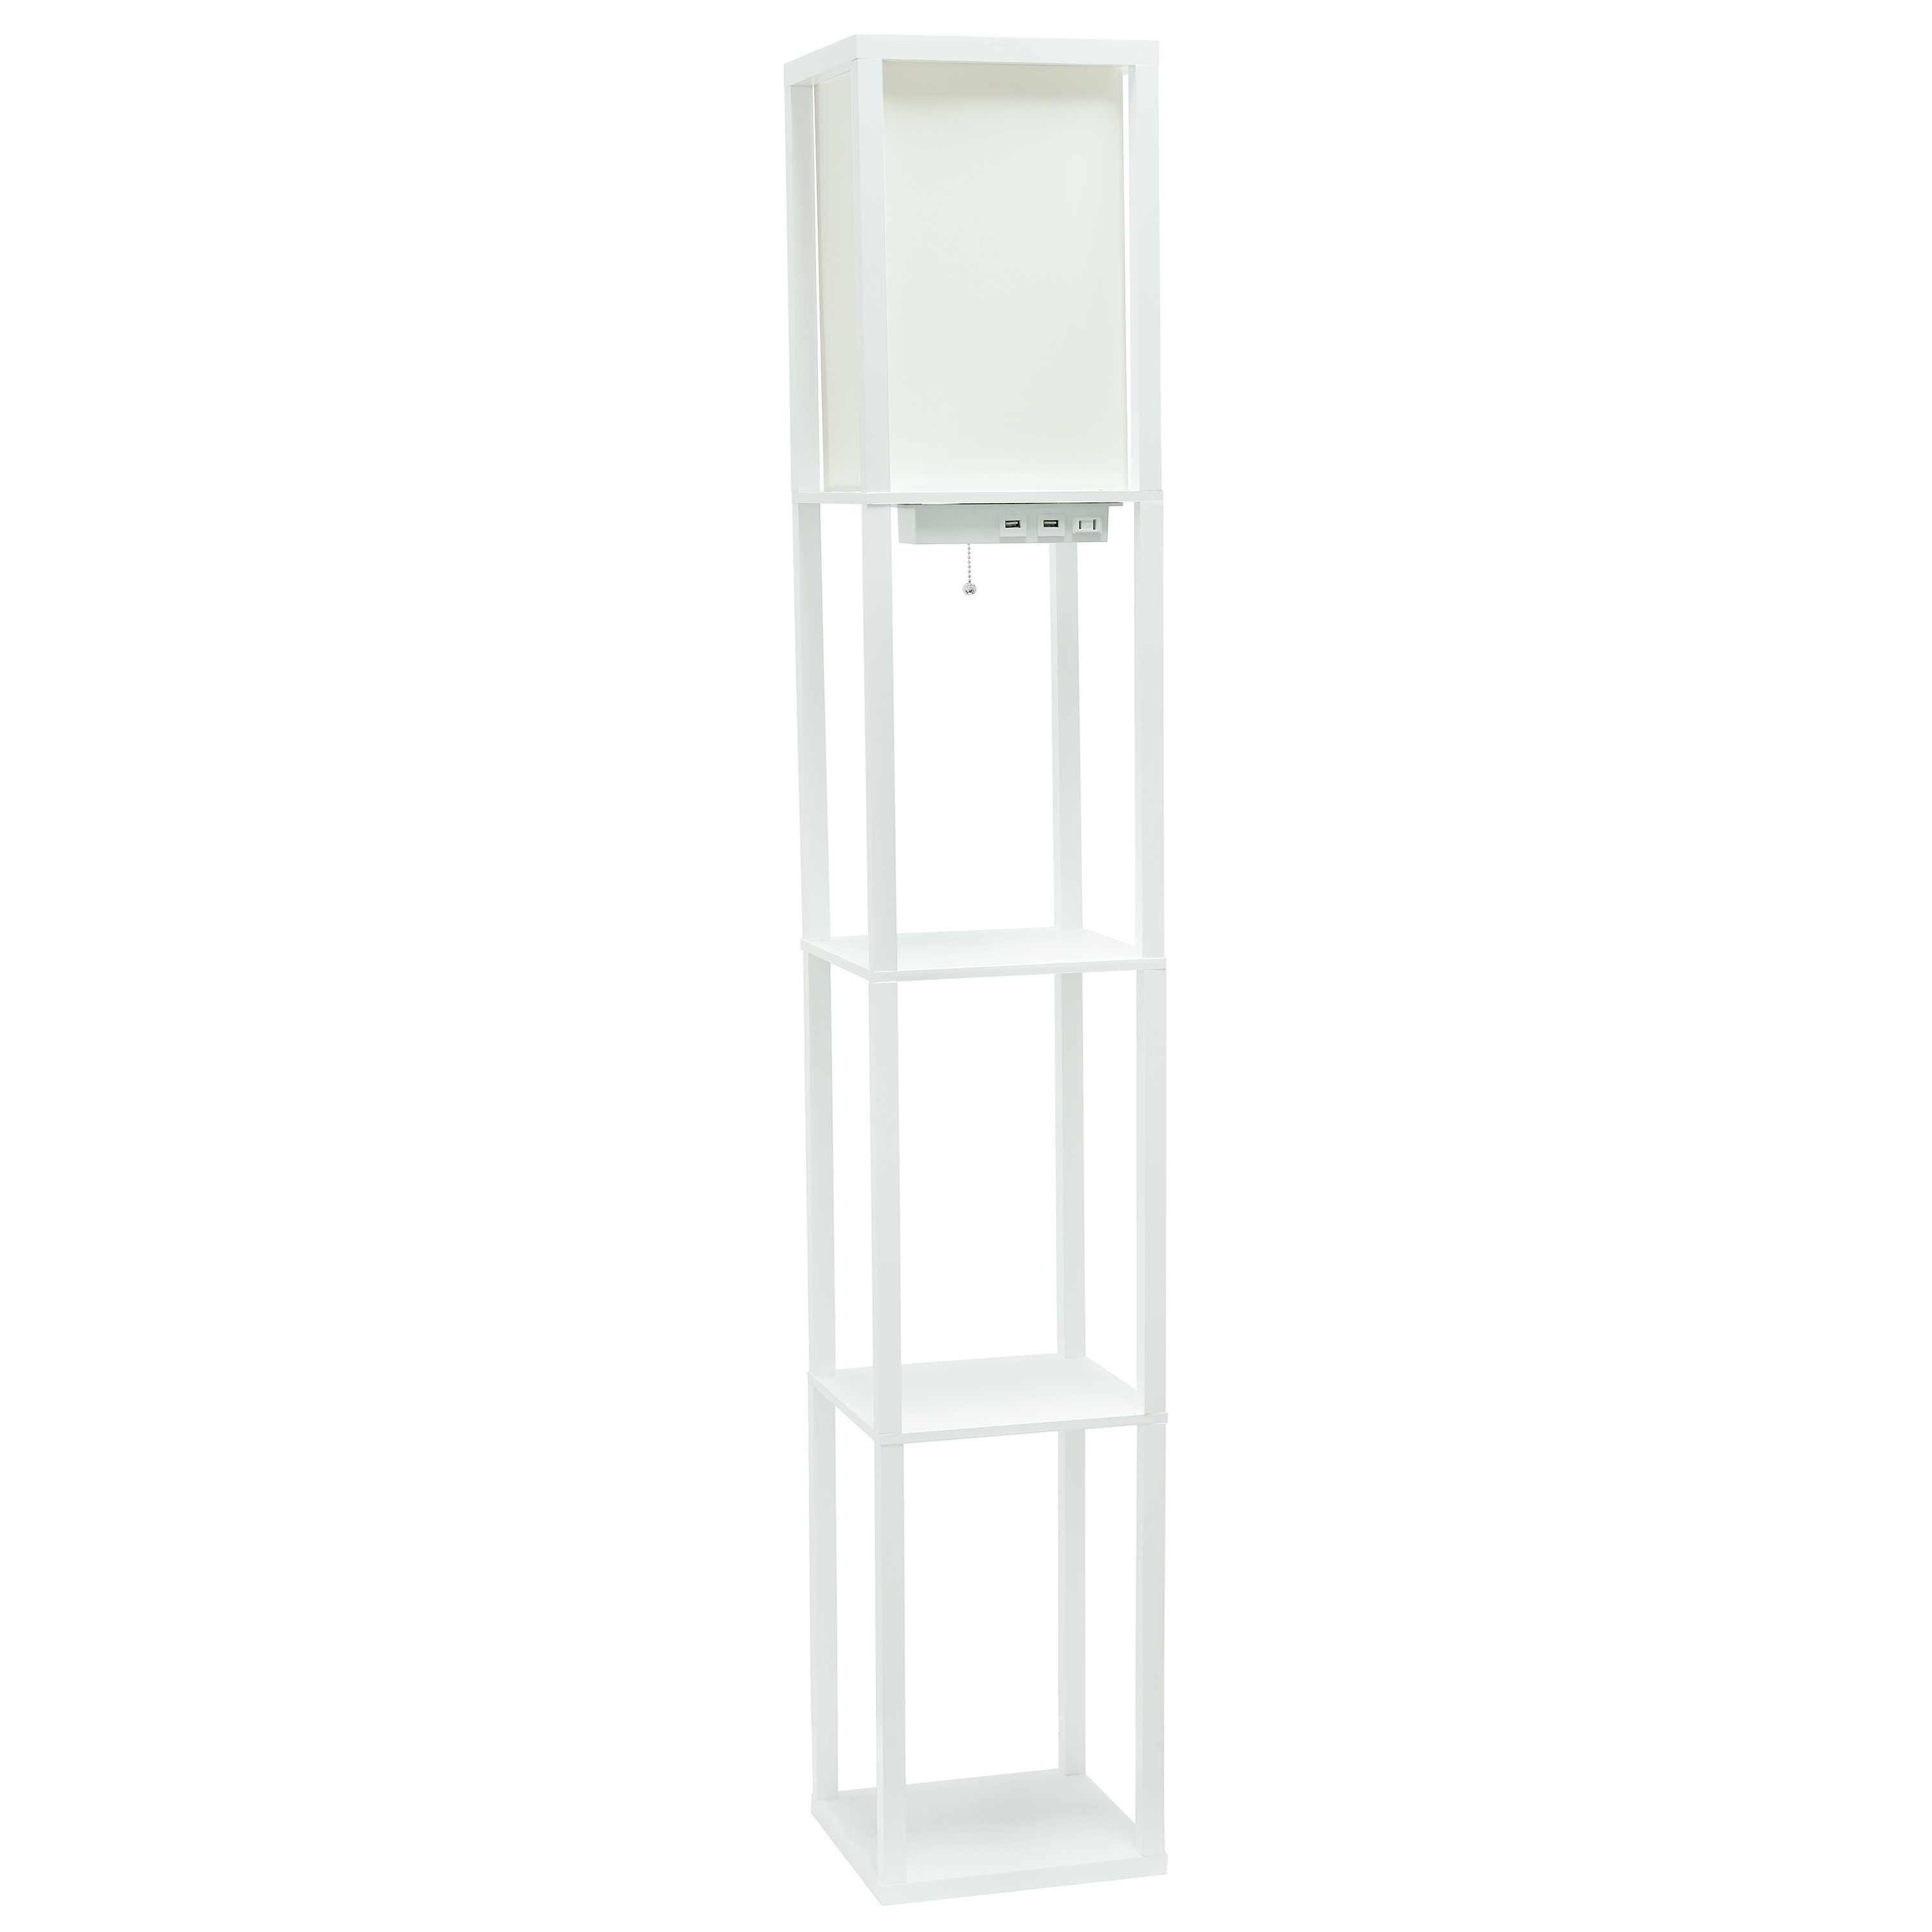 Simple Designs Floor Lamp Etagere Organizer Storage Shelf with 2 USB Charging Ports, 1 Charging Outlet and Linen Shade, White